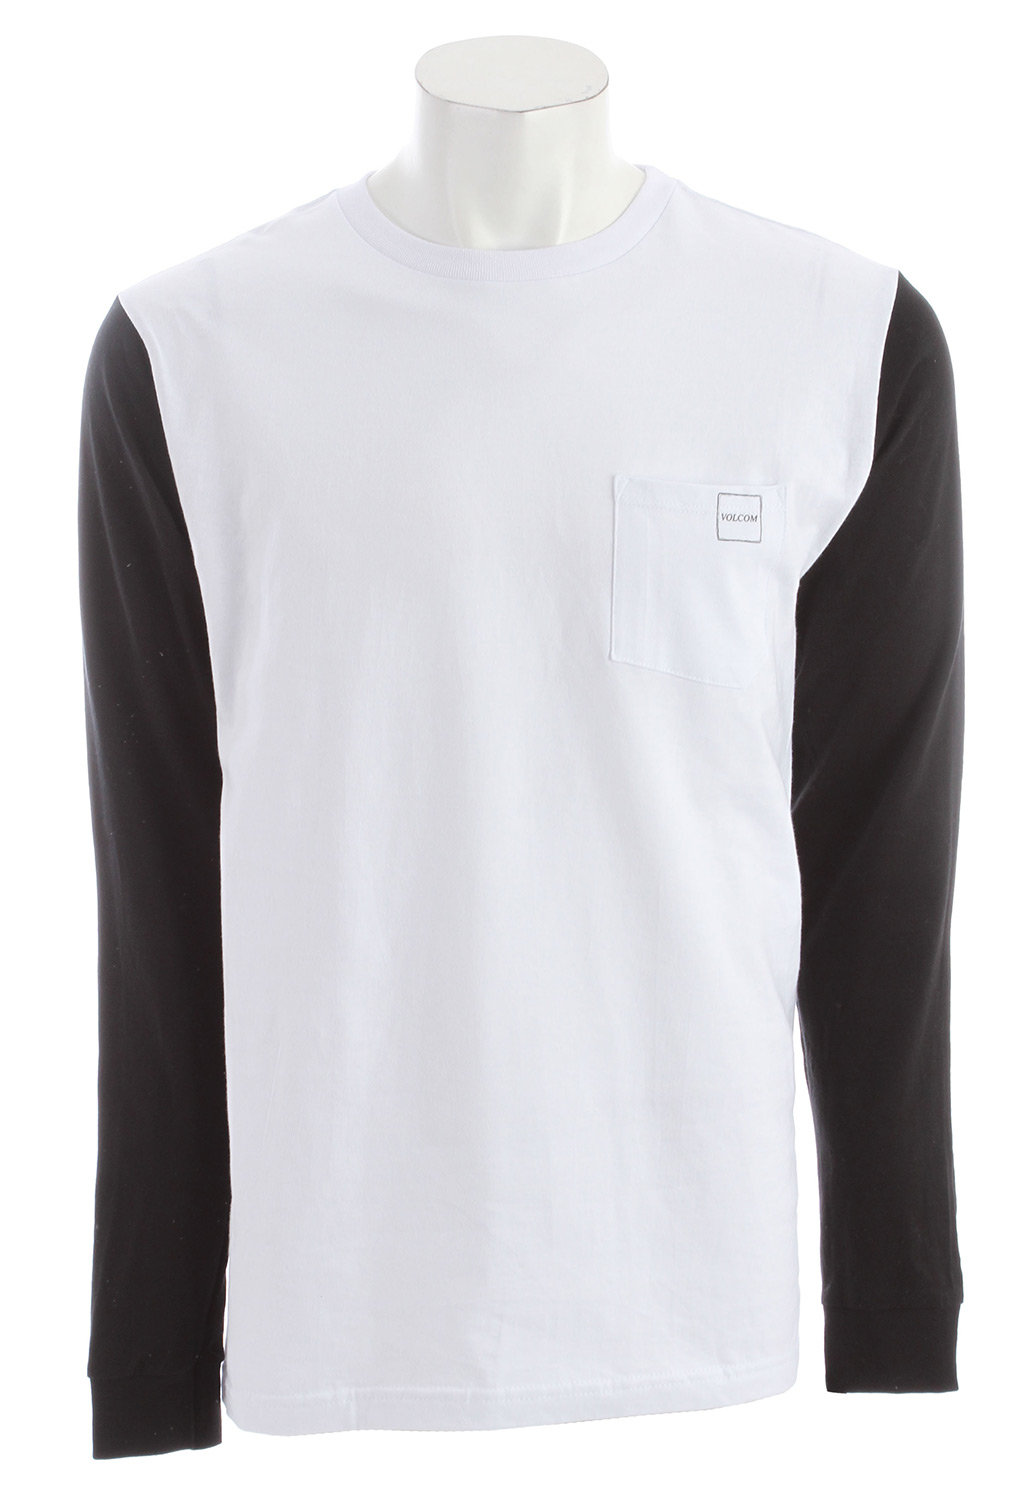 Surf Key Features of the Volcom Heights L/S Pocket T-Shirt: Basic Screenprint Basic Fit 100% Cotton - $21.95